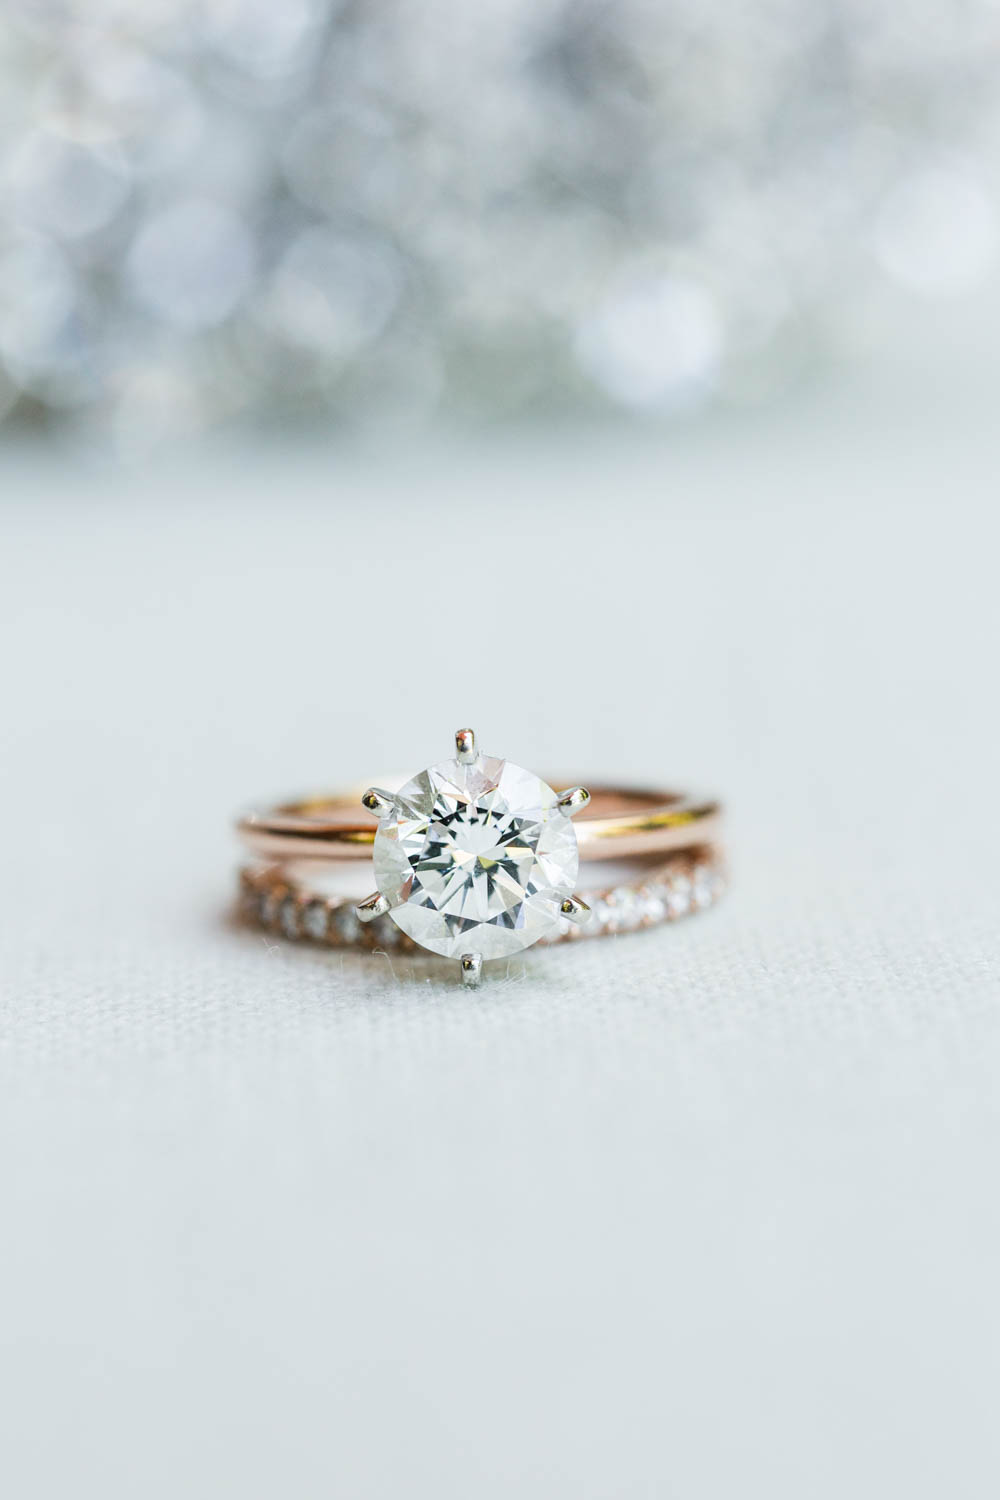 Diamond engagement solitaire ring with rose gold band, Cavin Elizabeth Photography